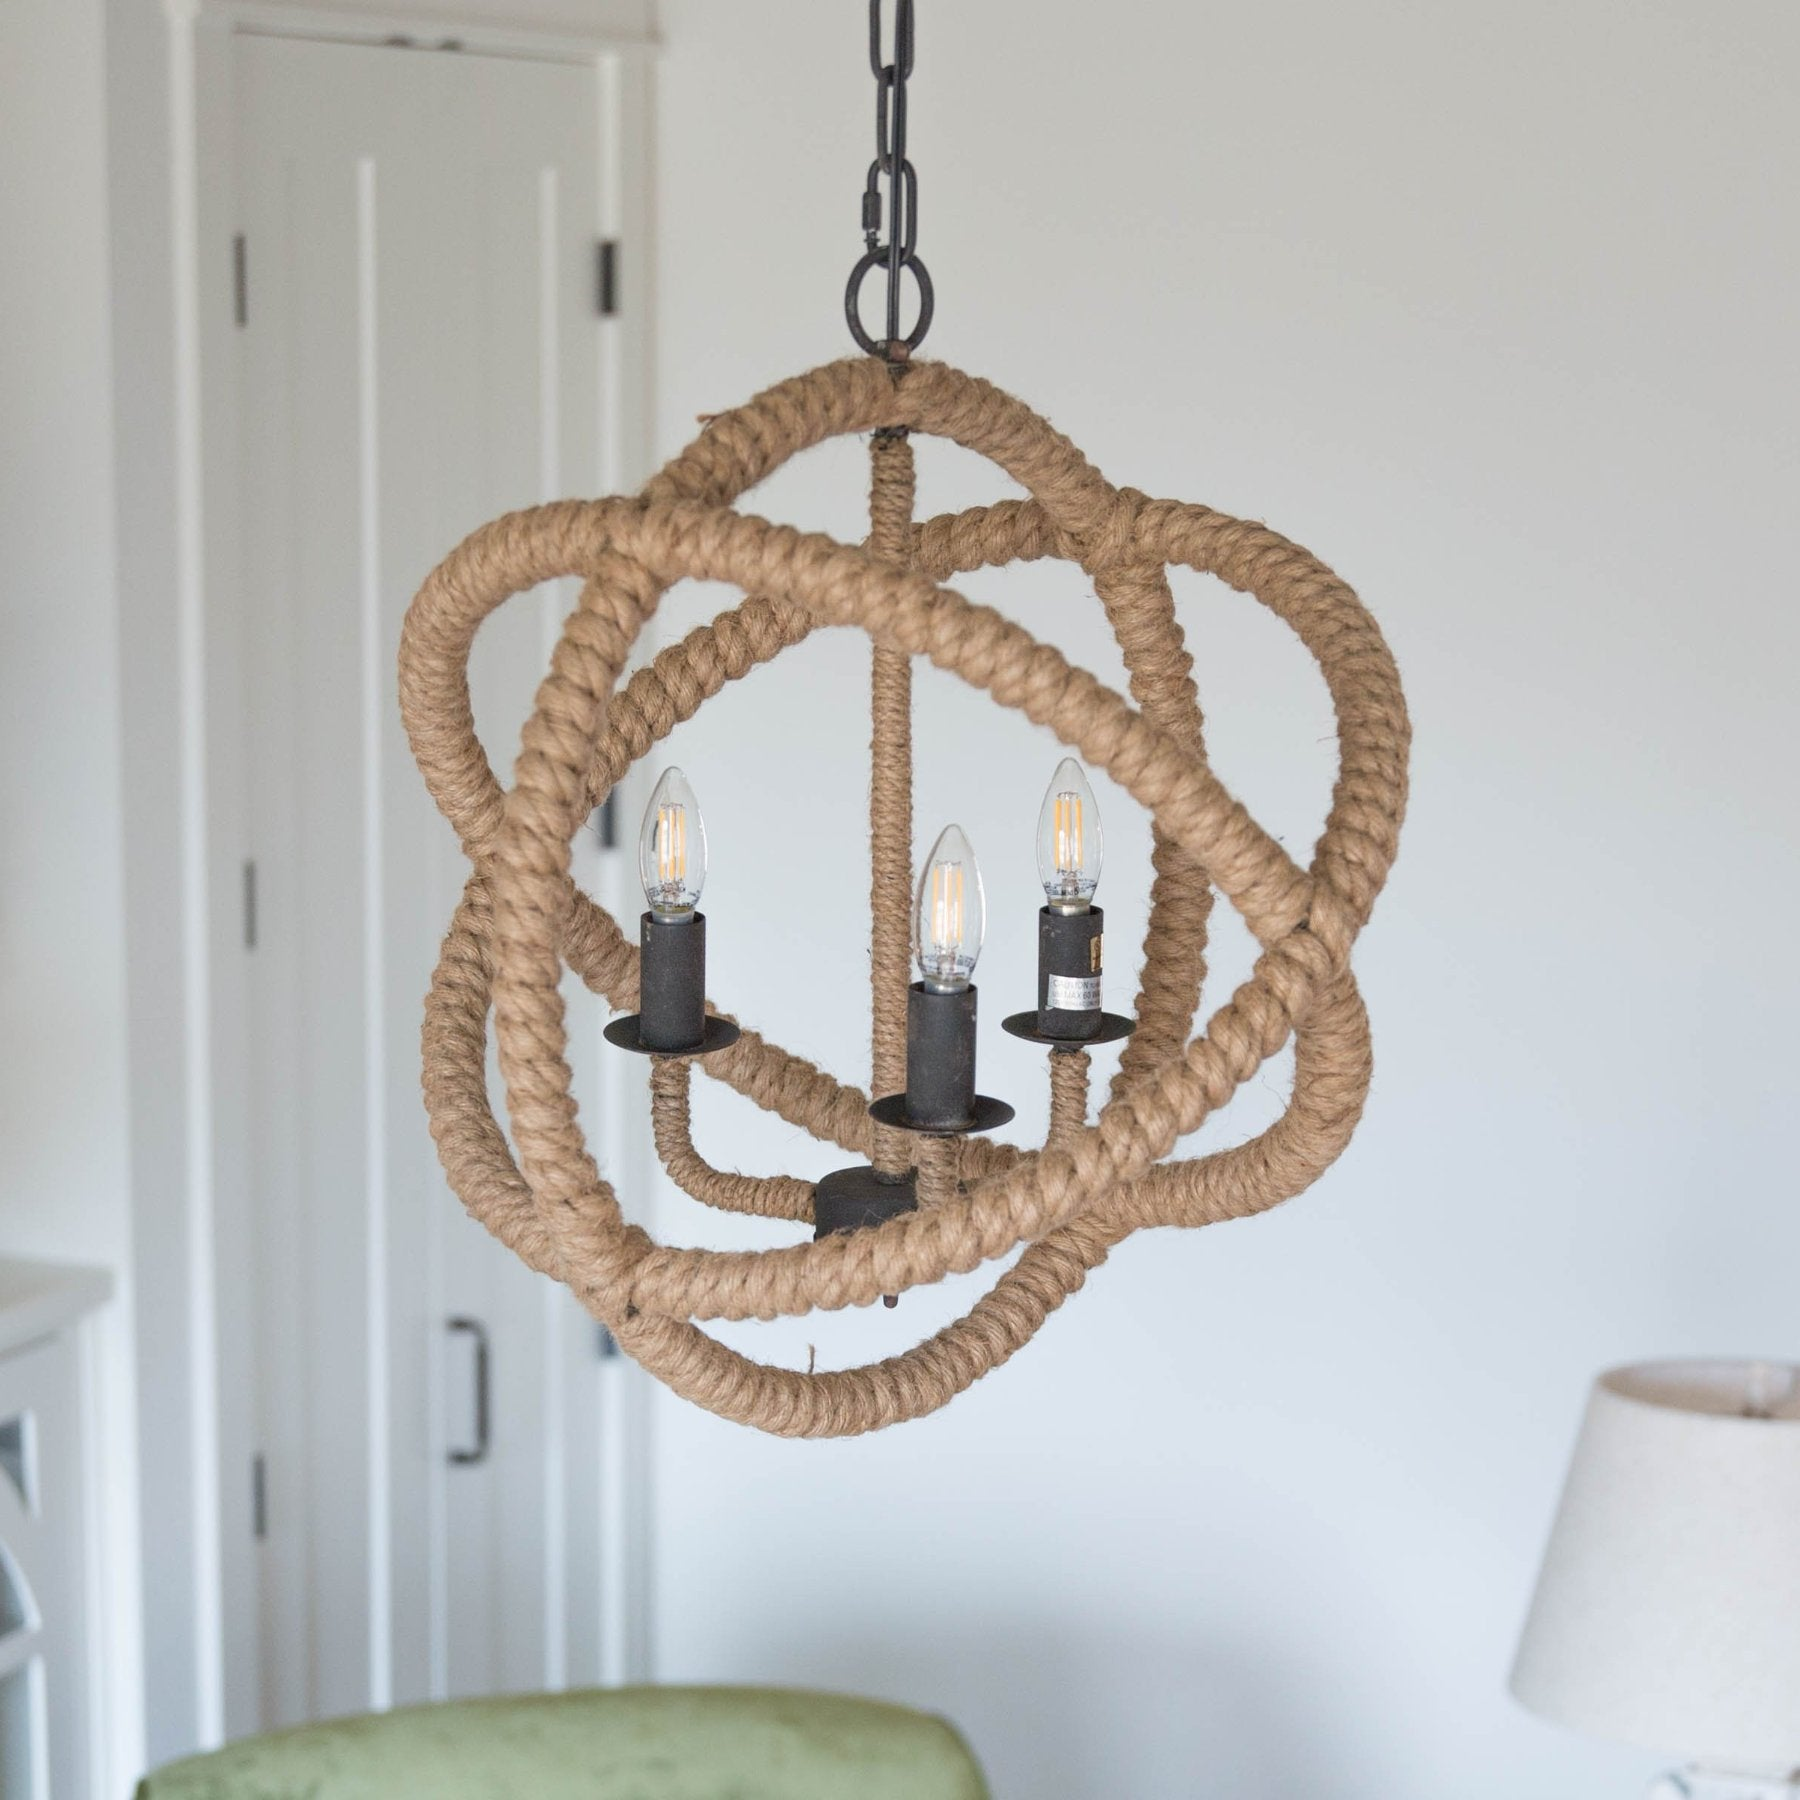 Whimsical rope iron chandelier smallwoods whimsical rope iron chandelier mozeypictures Images